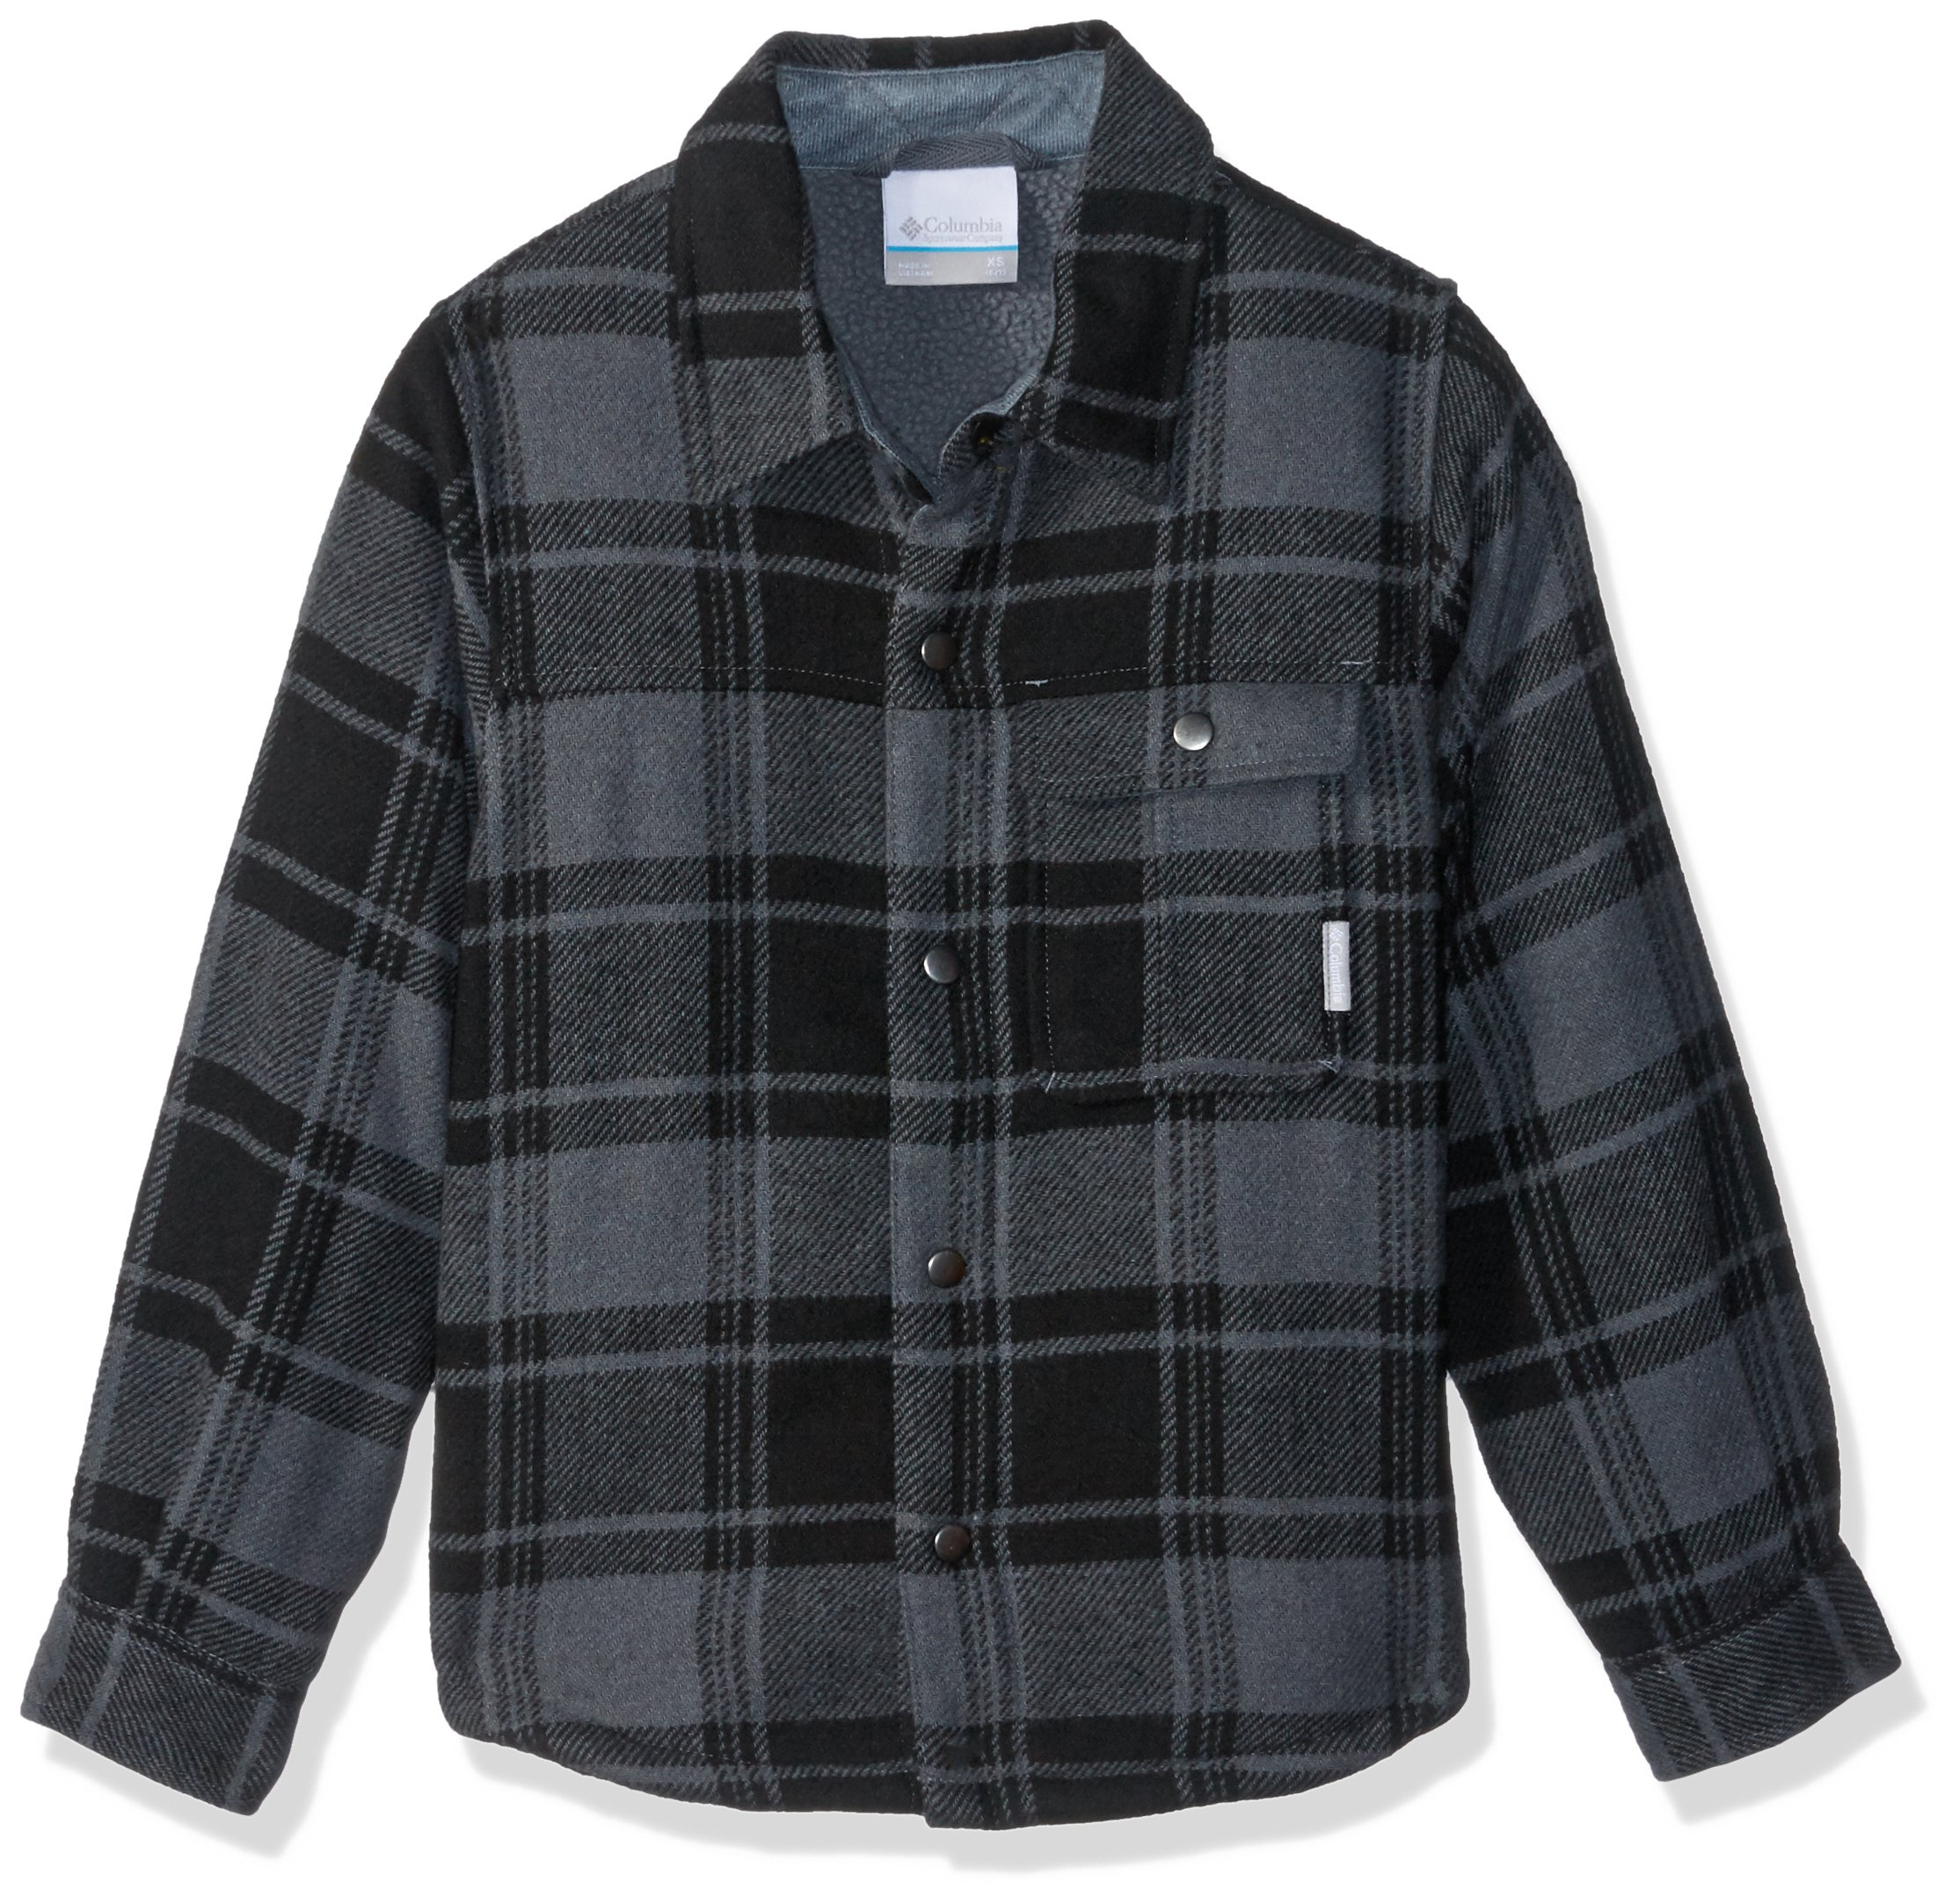 Columbia Boys' Little Windward Sherpa-Lined Shirt Jacket, Grill Plaid, X-Small by Columbia